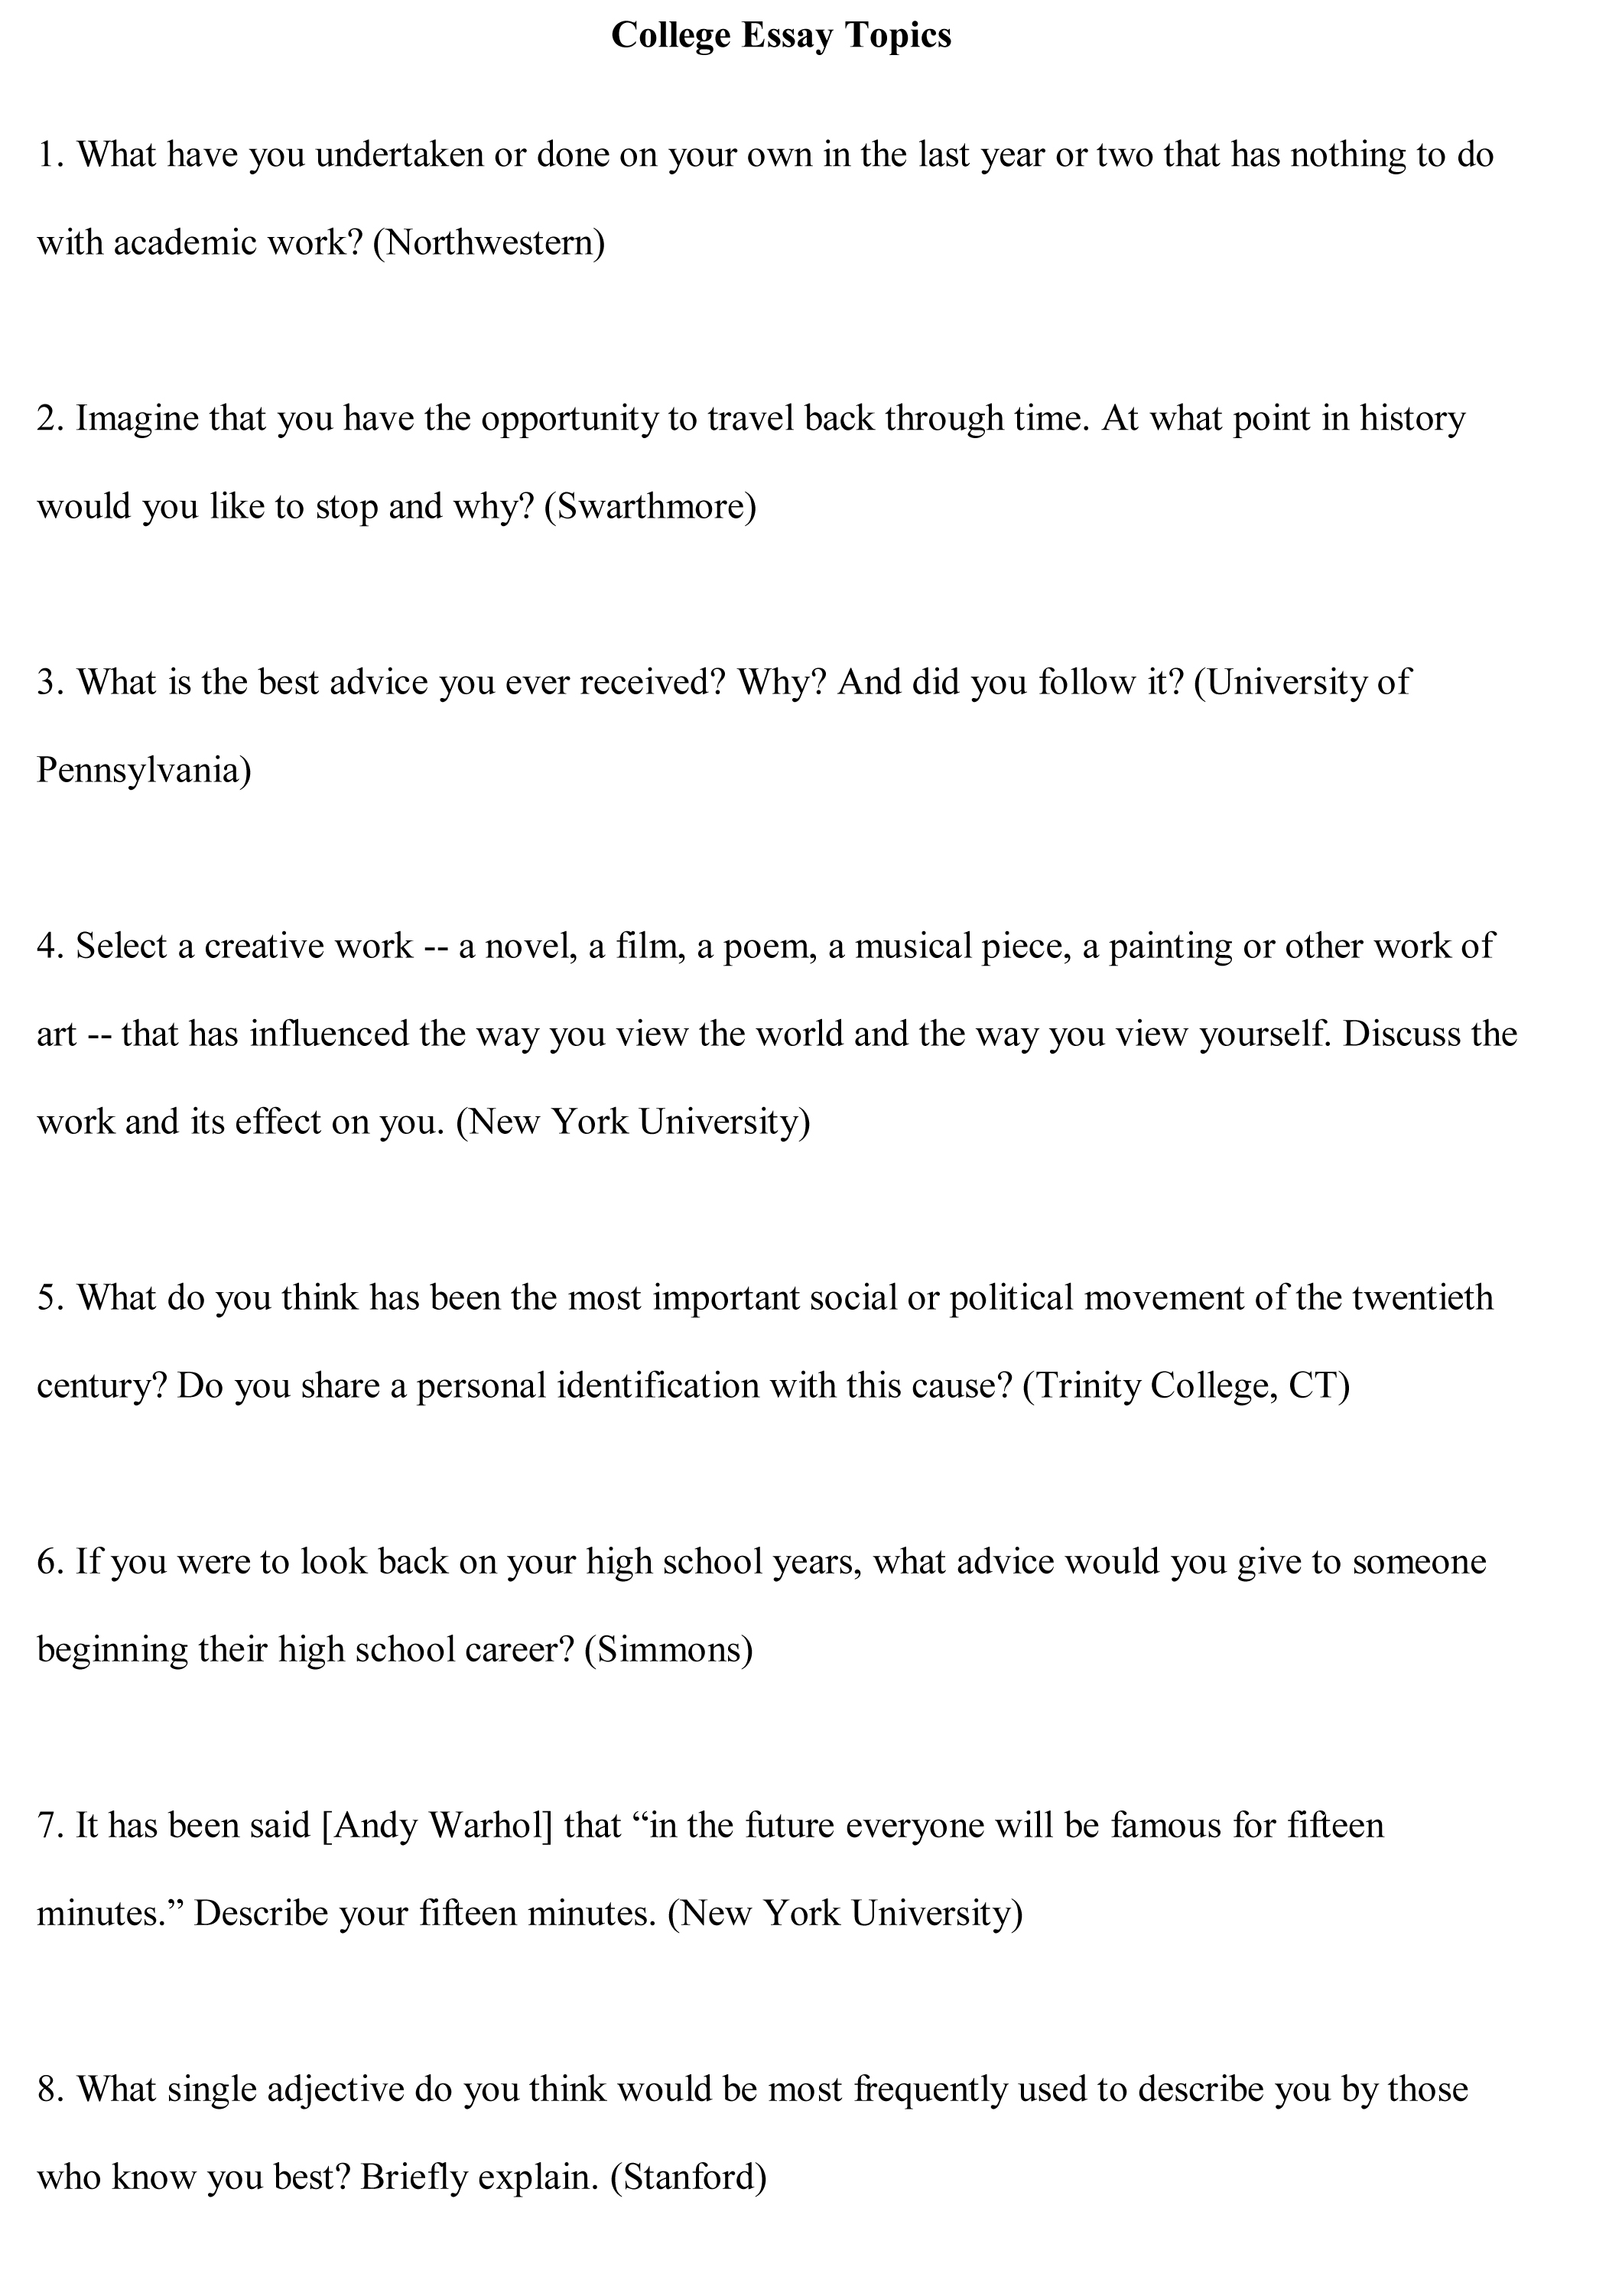 014 Essay Topics College Free Sample1 Archaicawful For High School English Schoolers Grade 8 Full